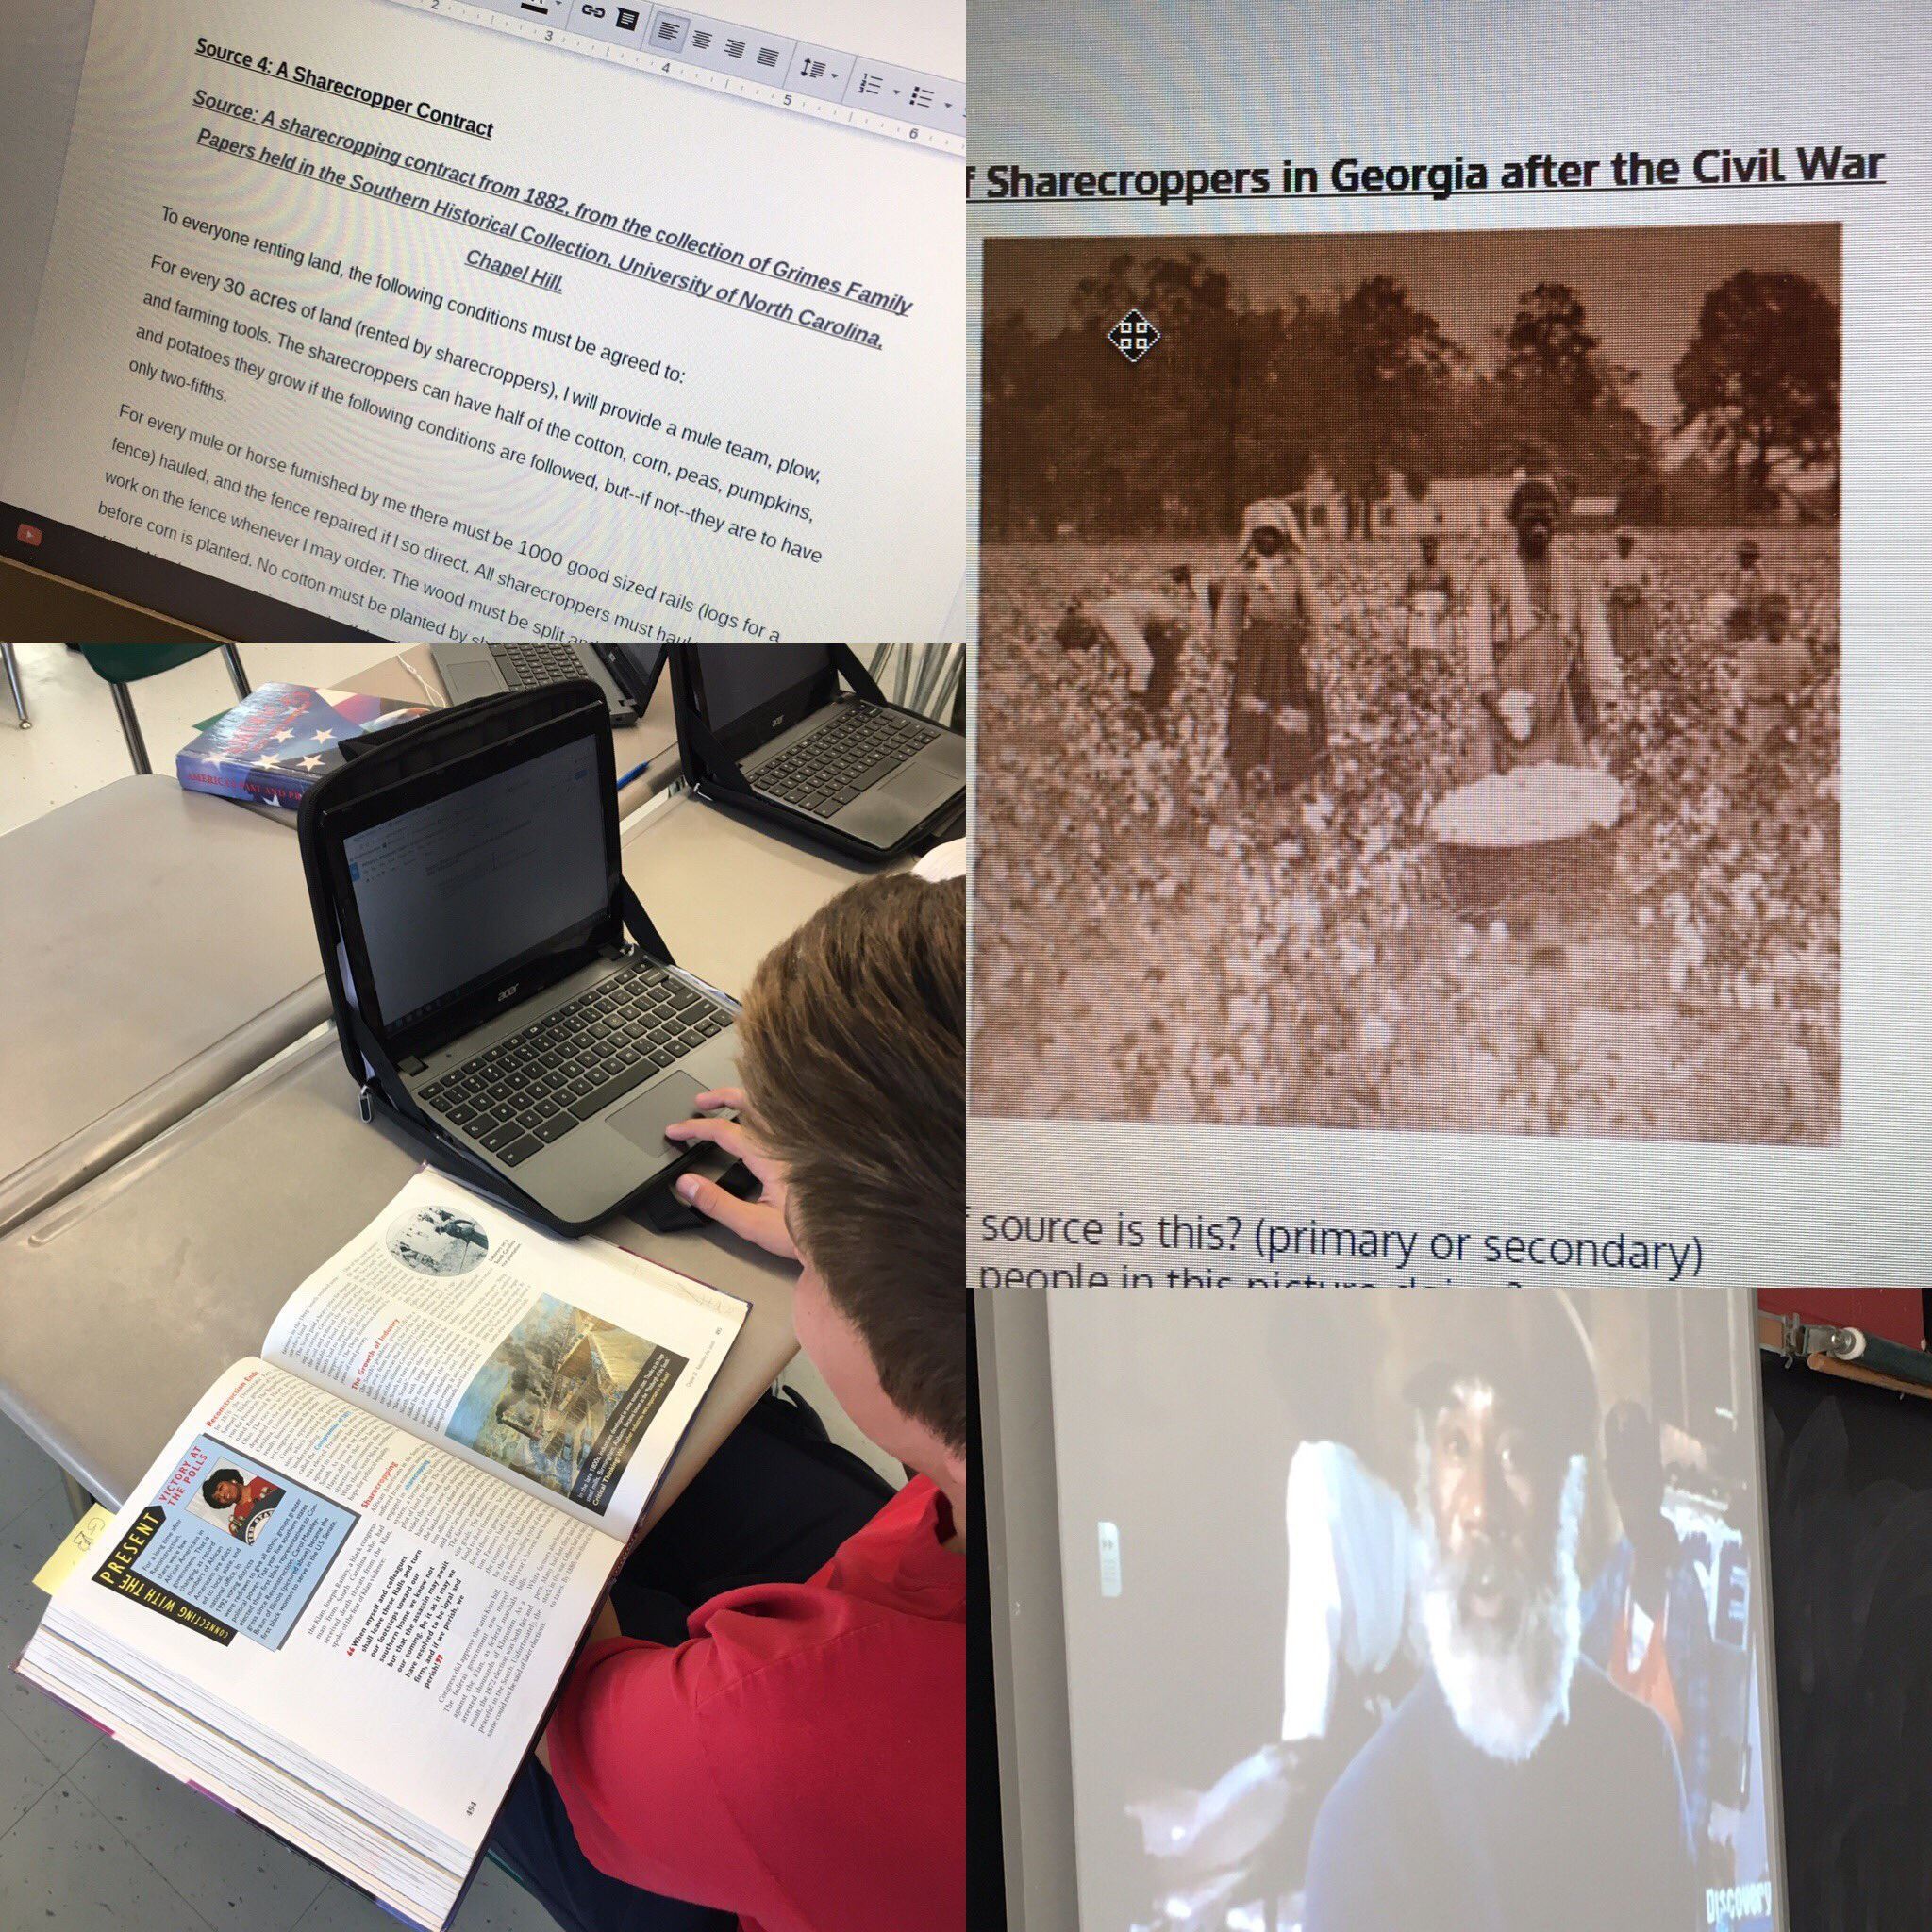 Rewriting the textbook to paint a more accurate picture of sharecropping during Reconstruction after analyzing primary sources #MTPSPride https://t.co/MelGFF2YC6